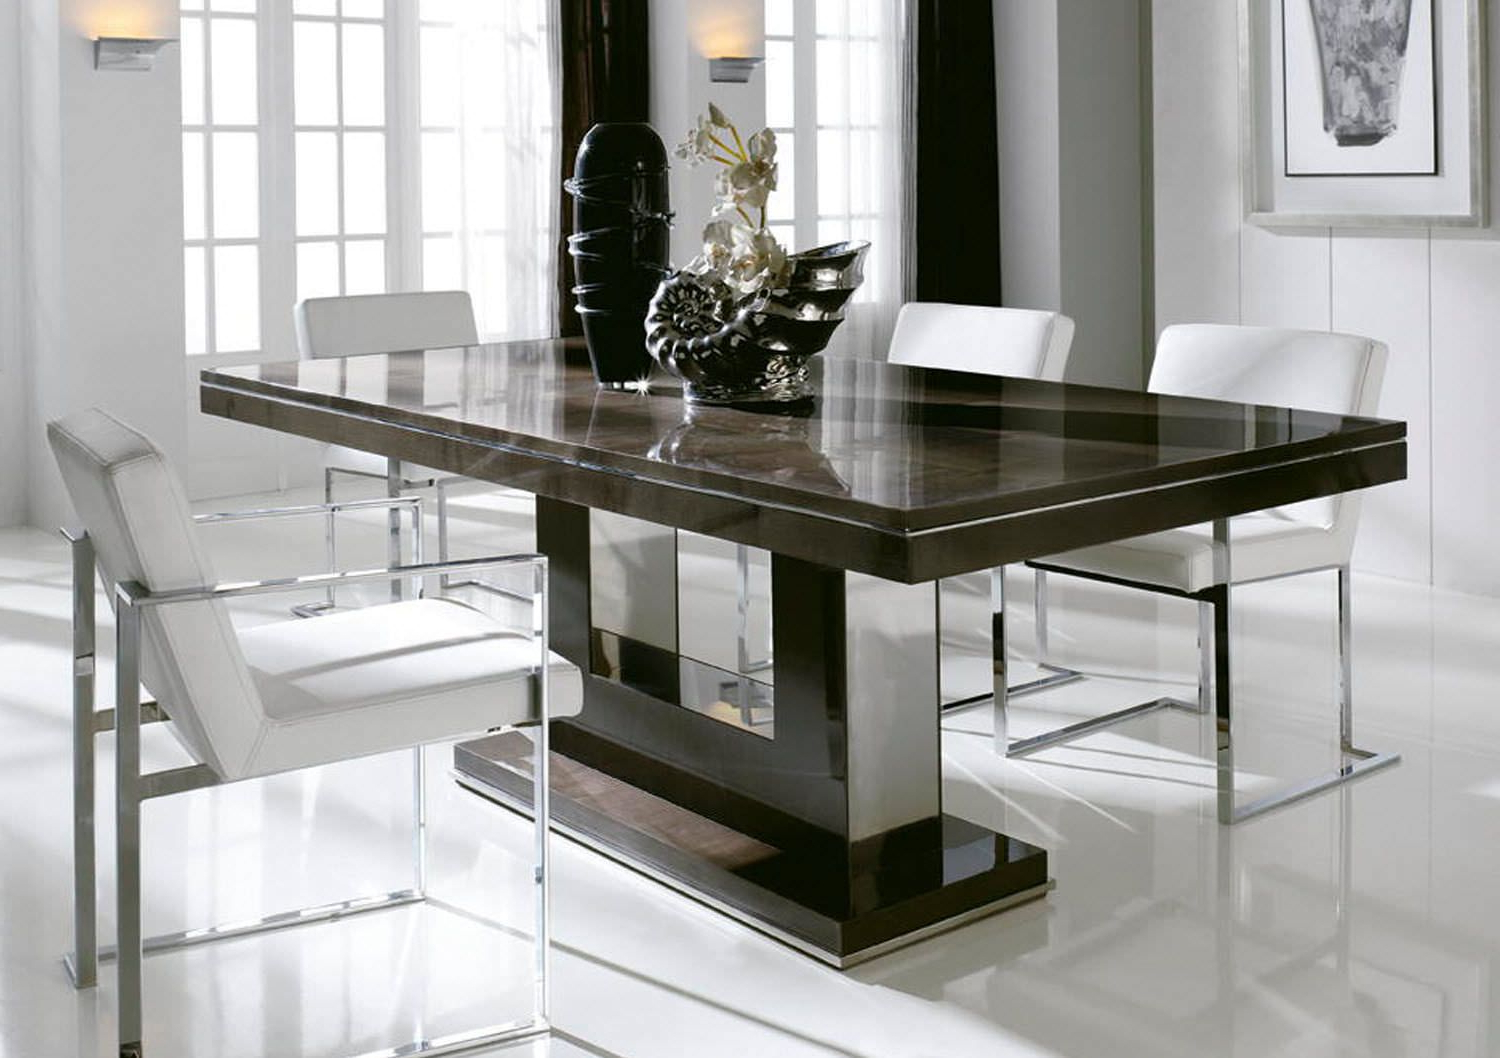 Chrome Contemporary Square Casual Dining Tables For Well Known Design Dining Table Photo (Gallery 7 of 30)